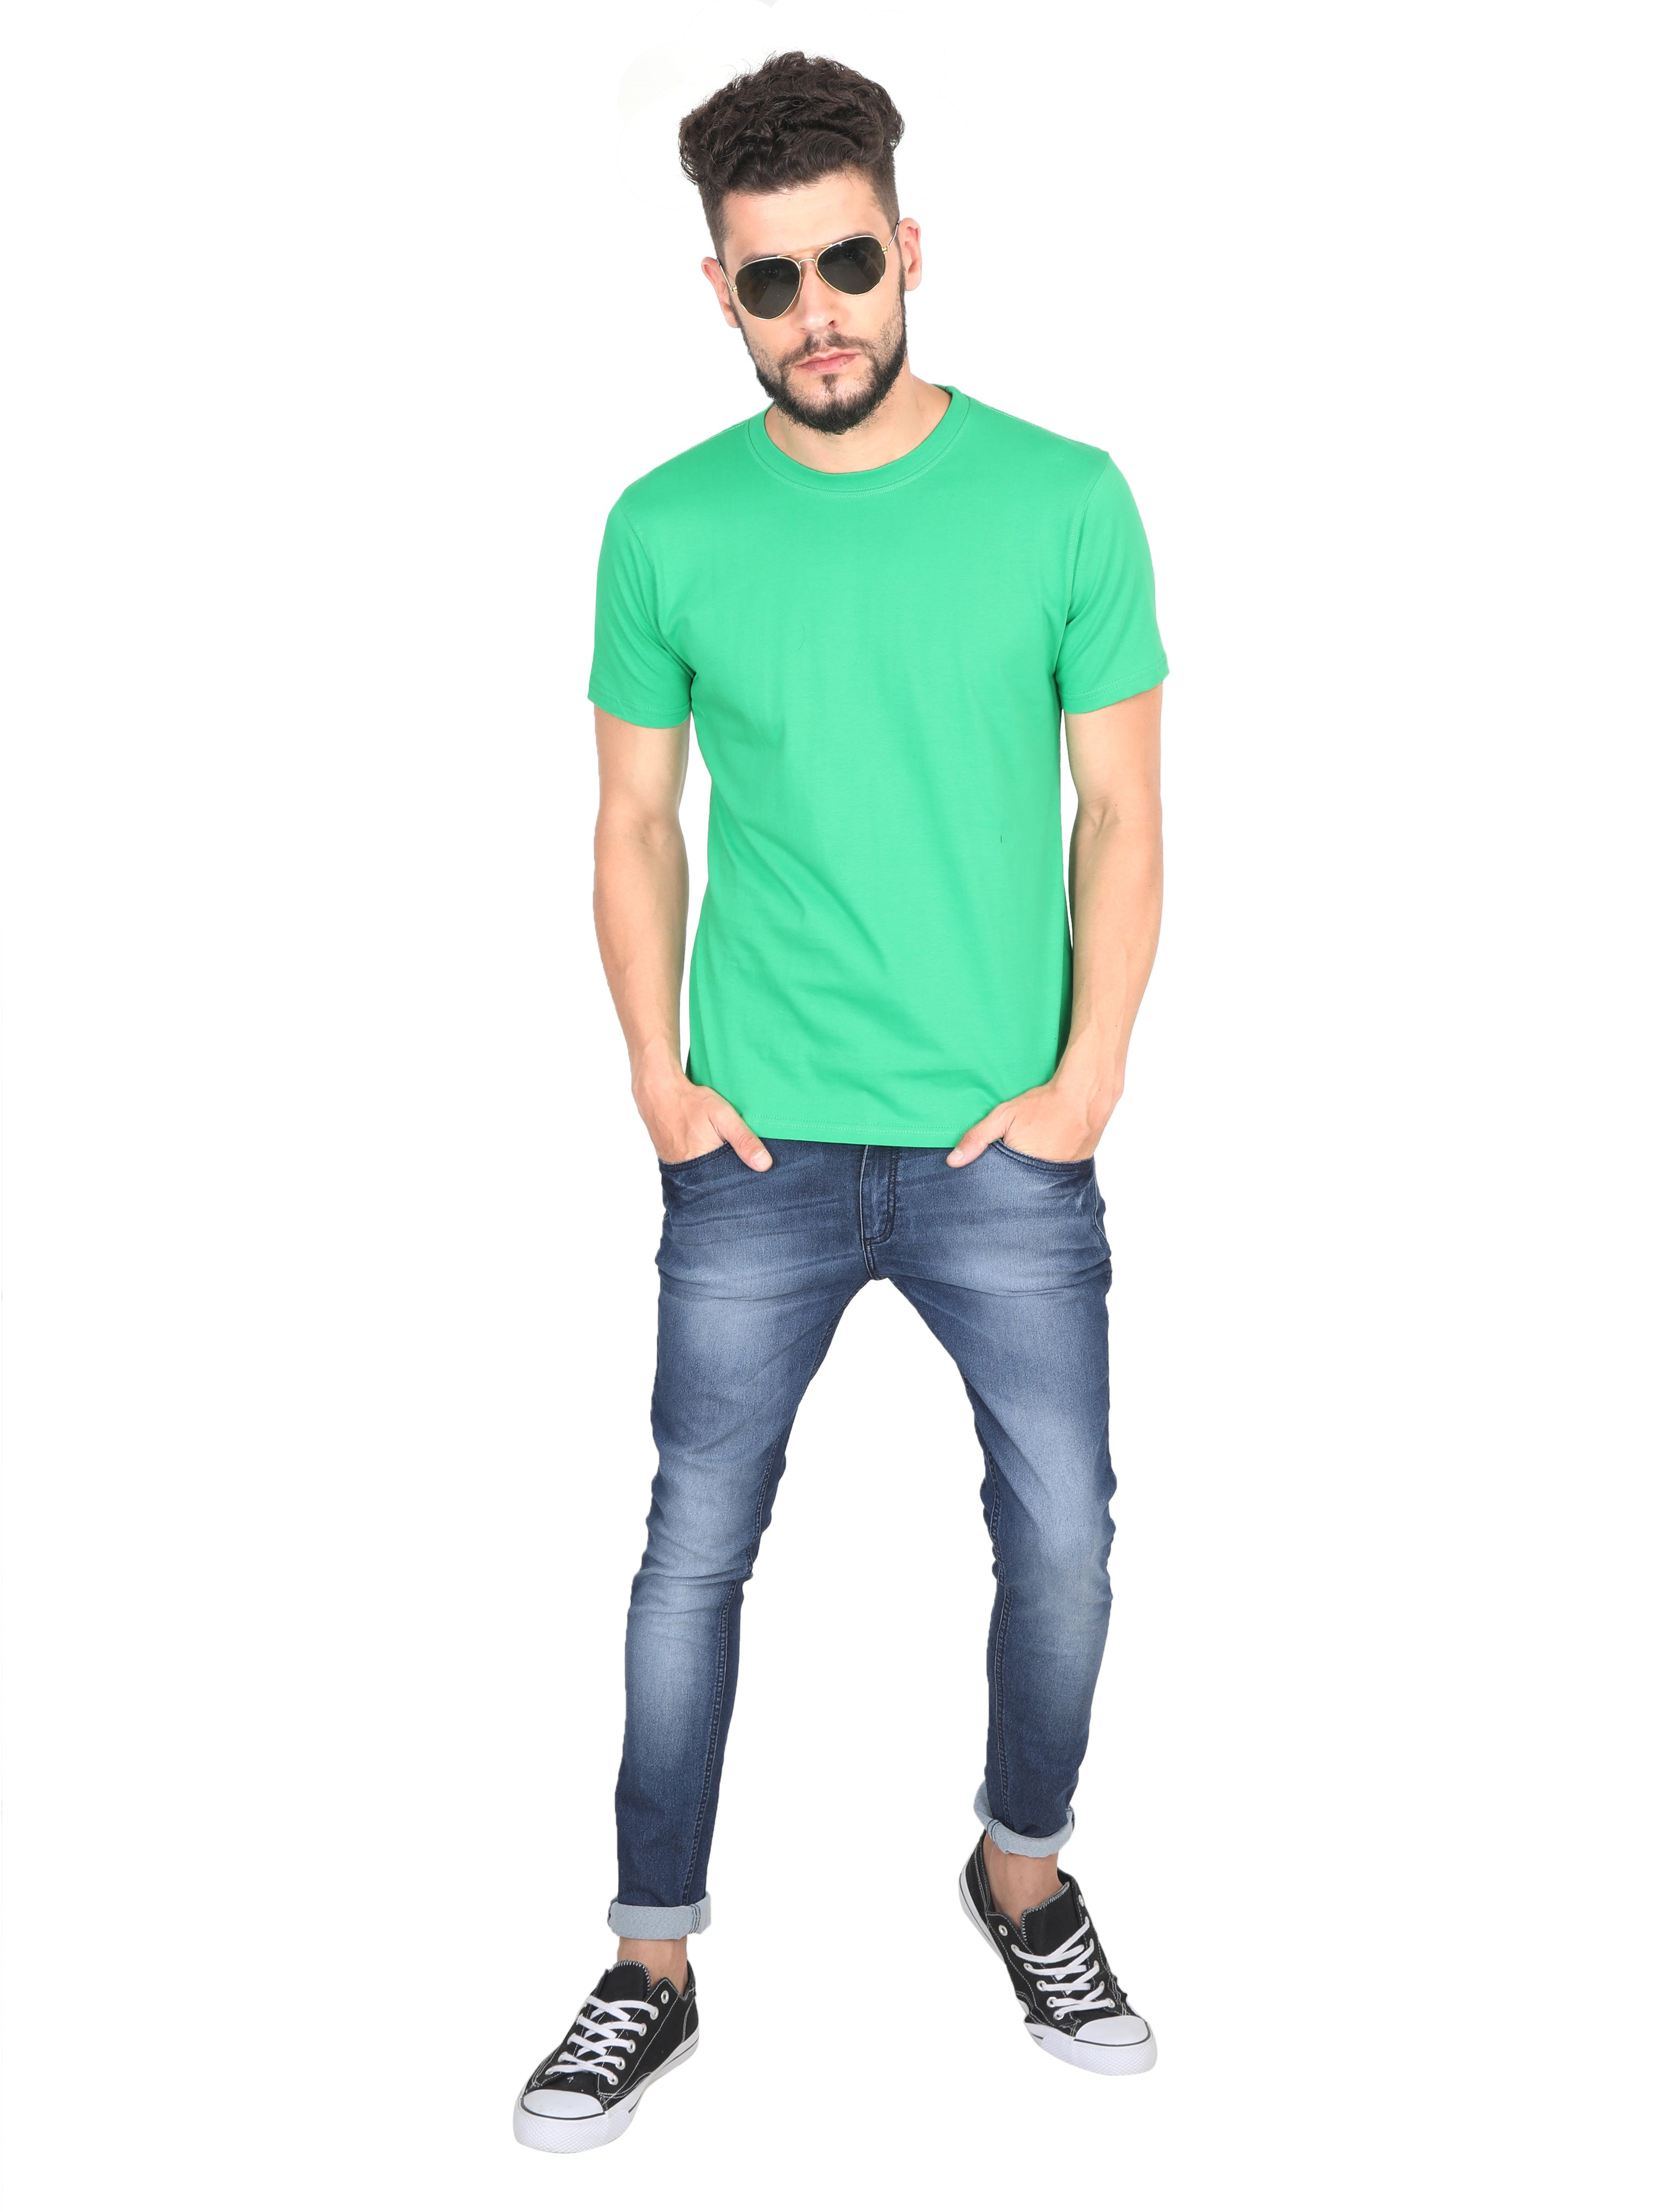 Solids: Flag Green Premium T-shirt